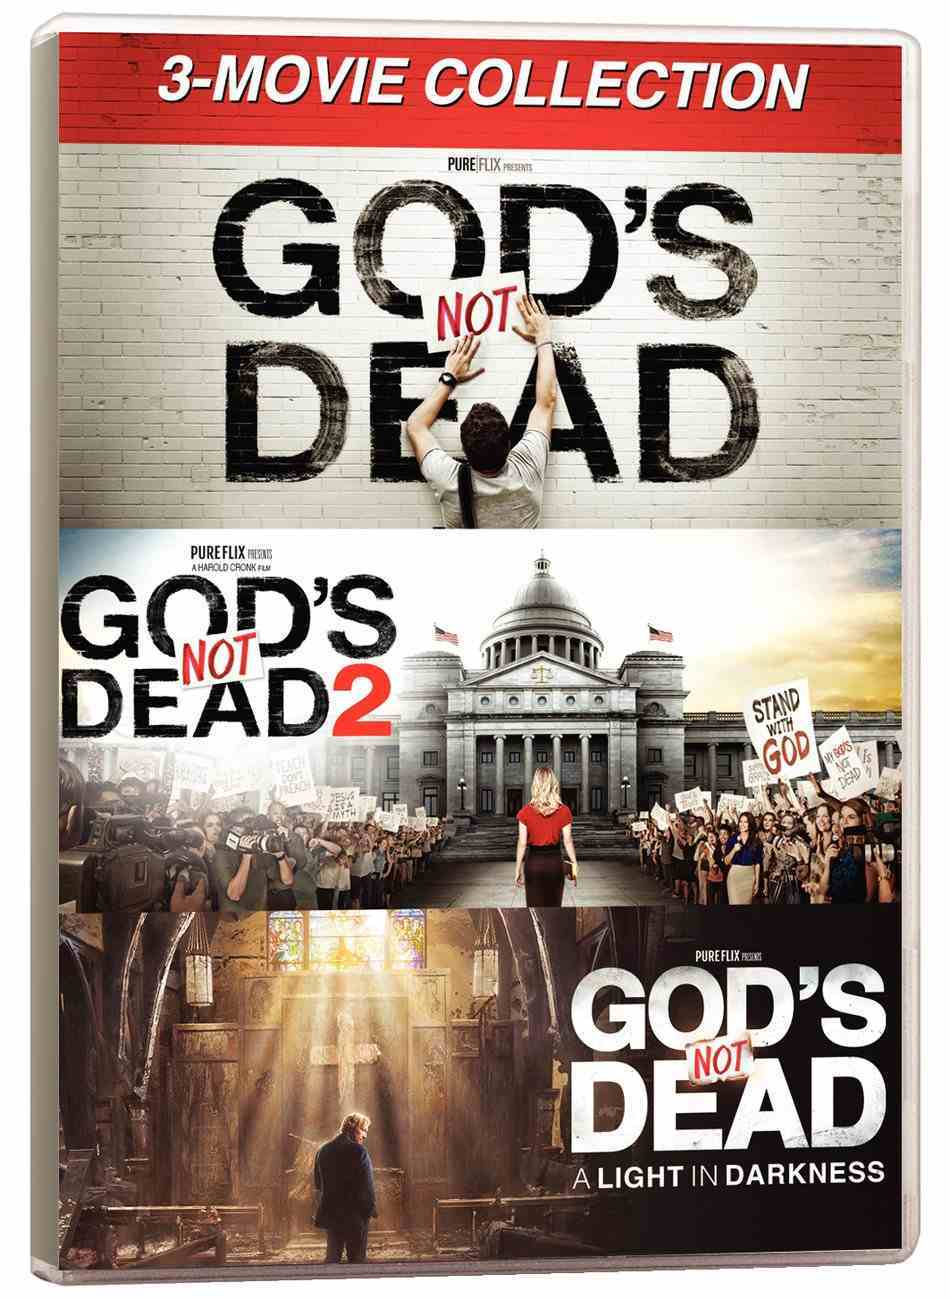 God's Not Dead 3-Movie Collection (3 Dvd Triple Pack) DVD